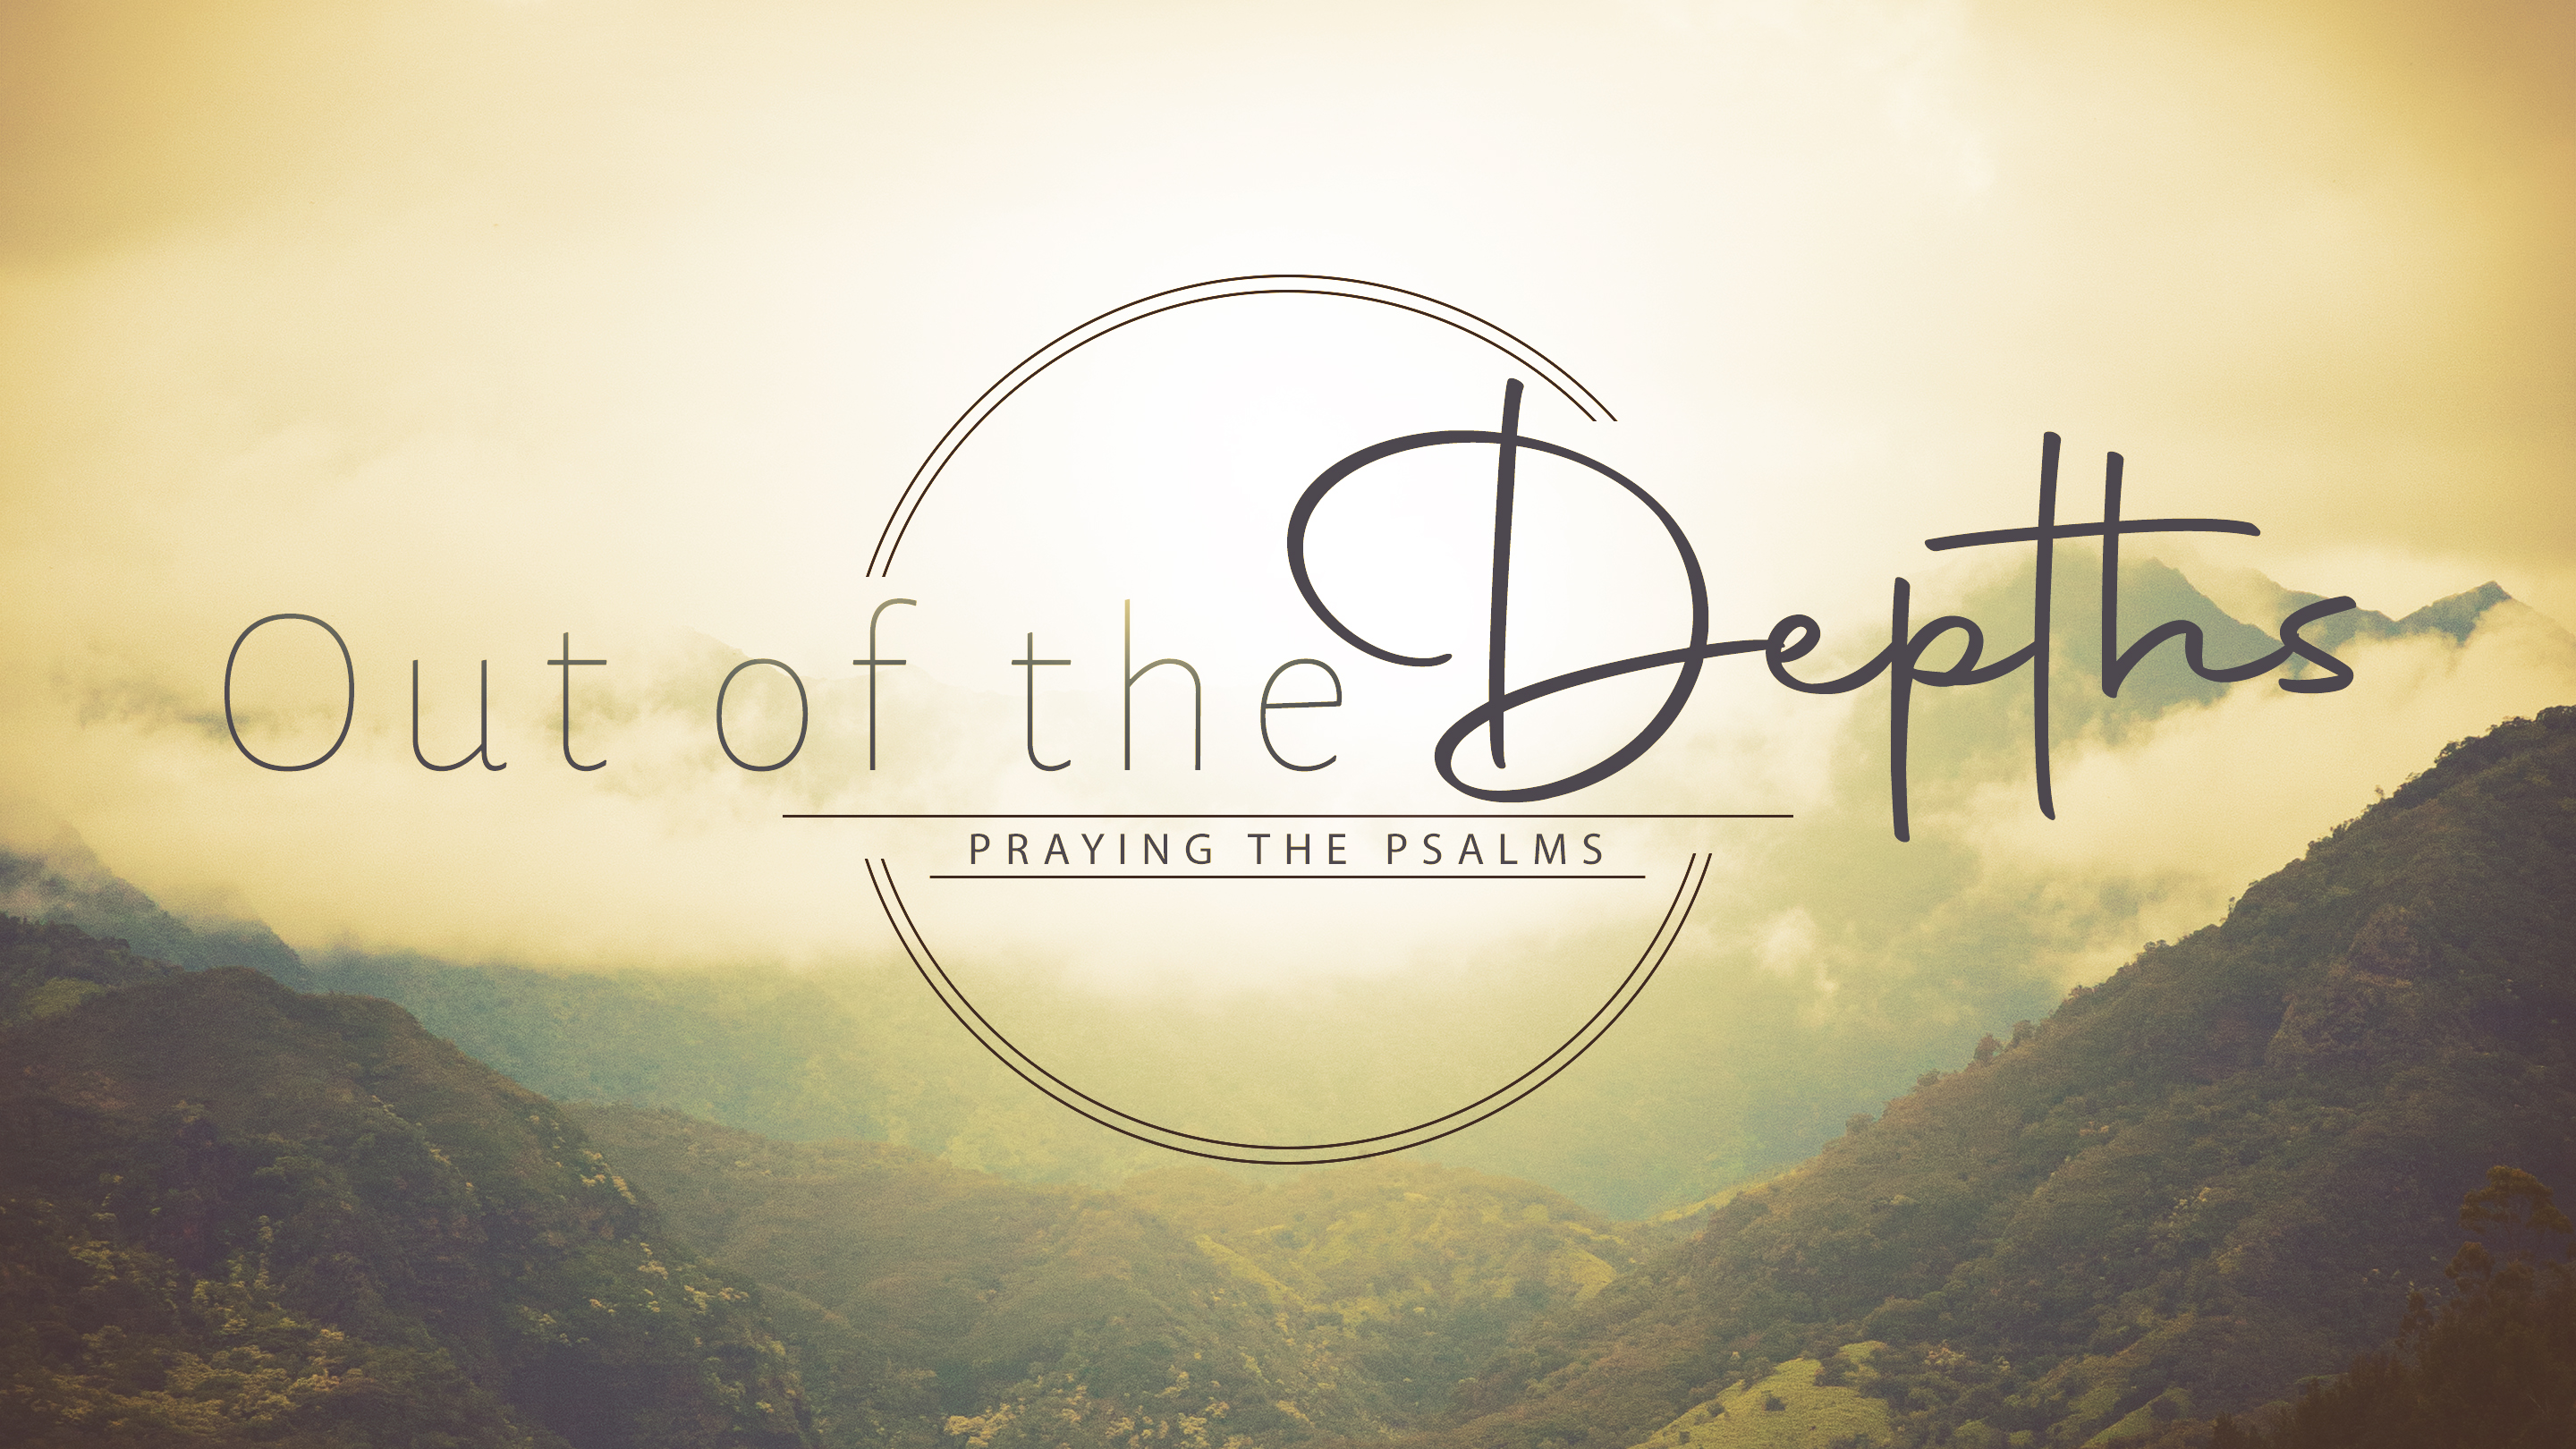 Out of the Depths: Praying the Psalms